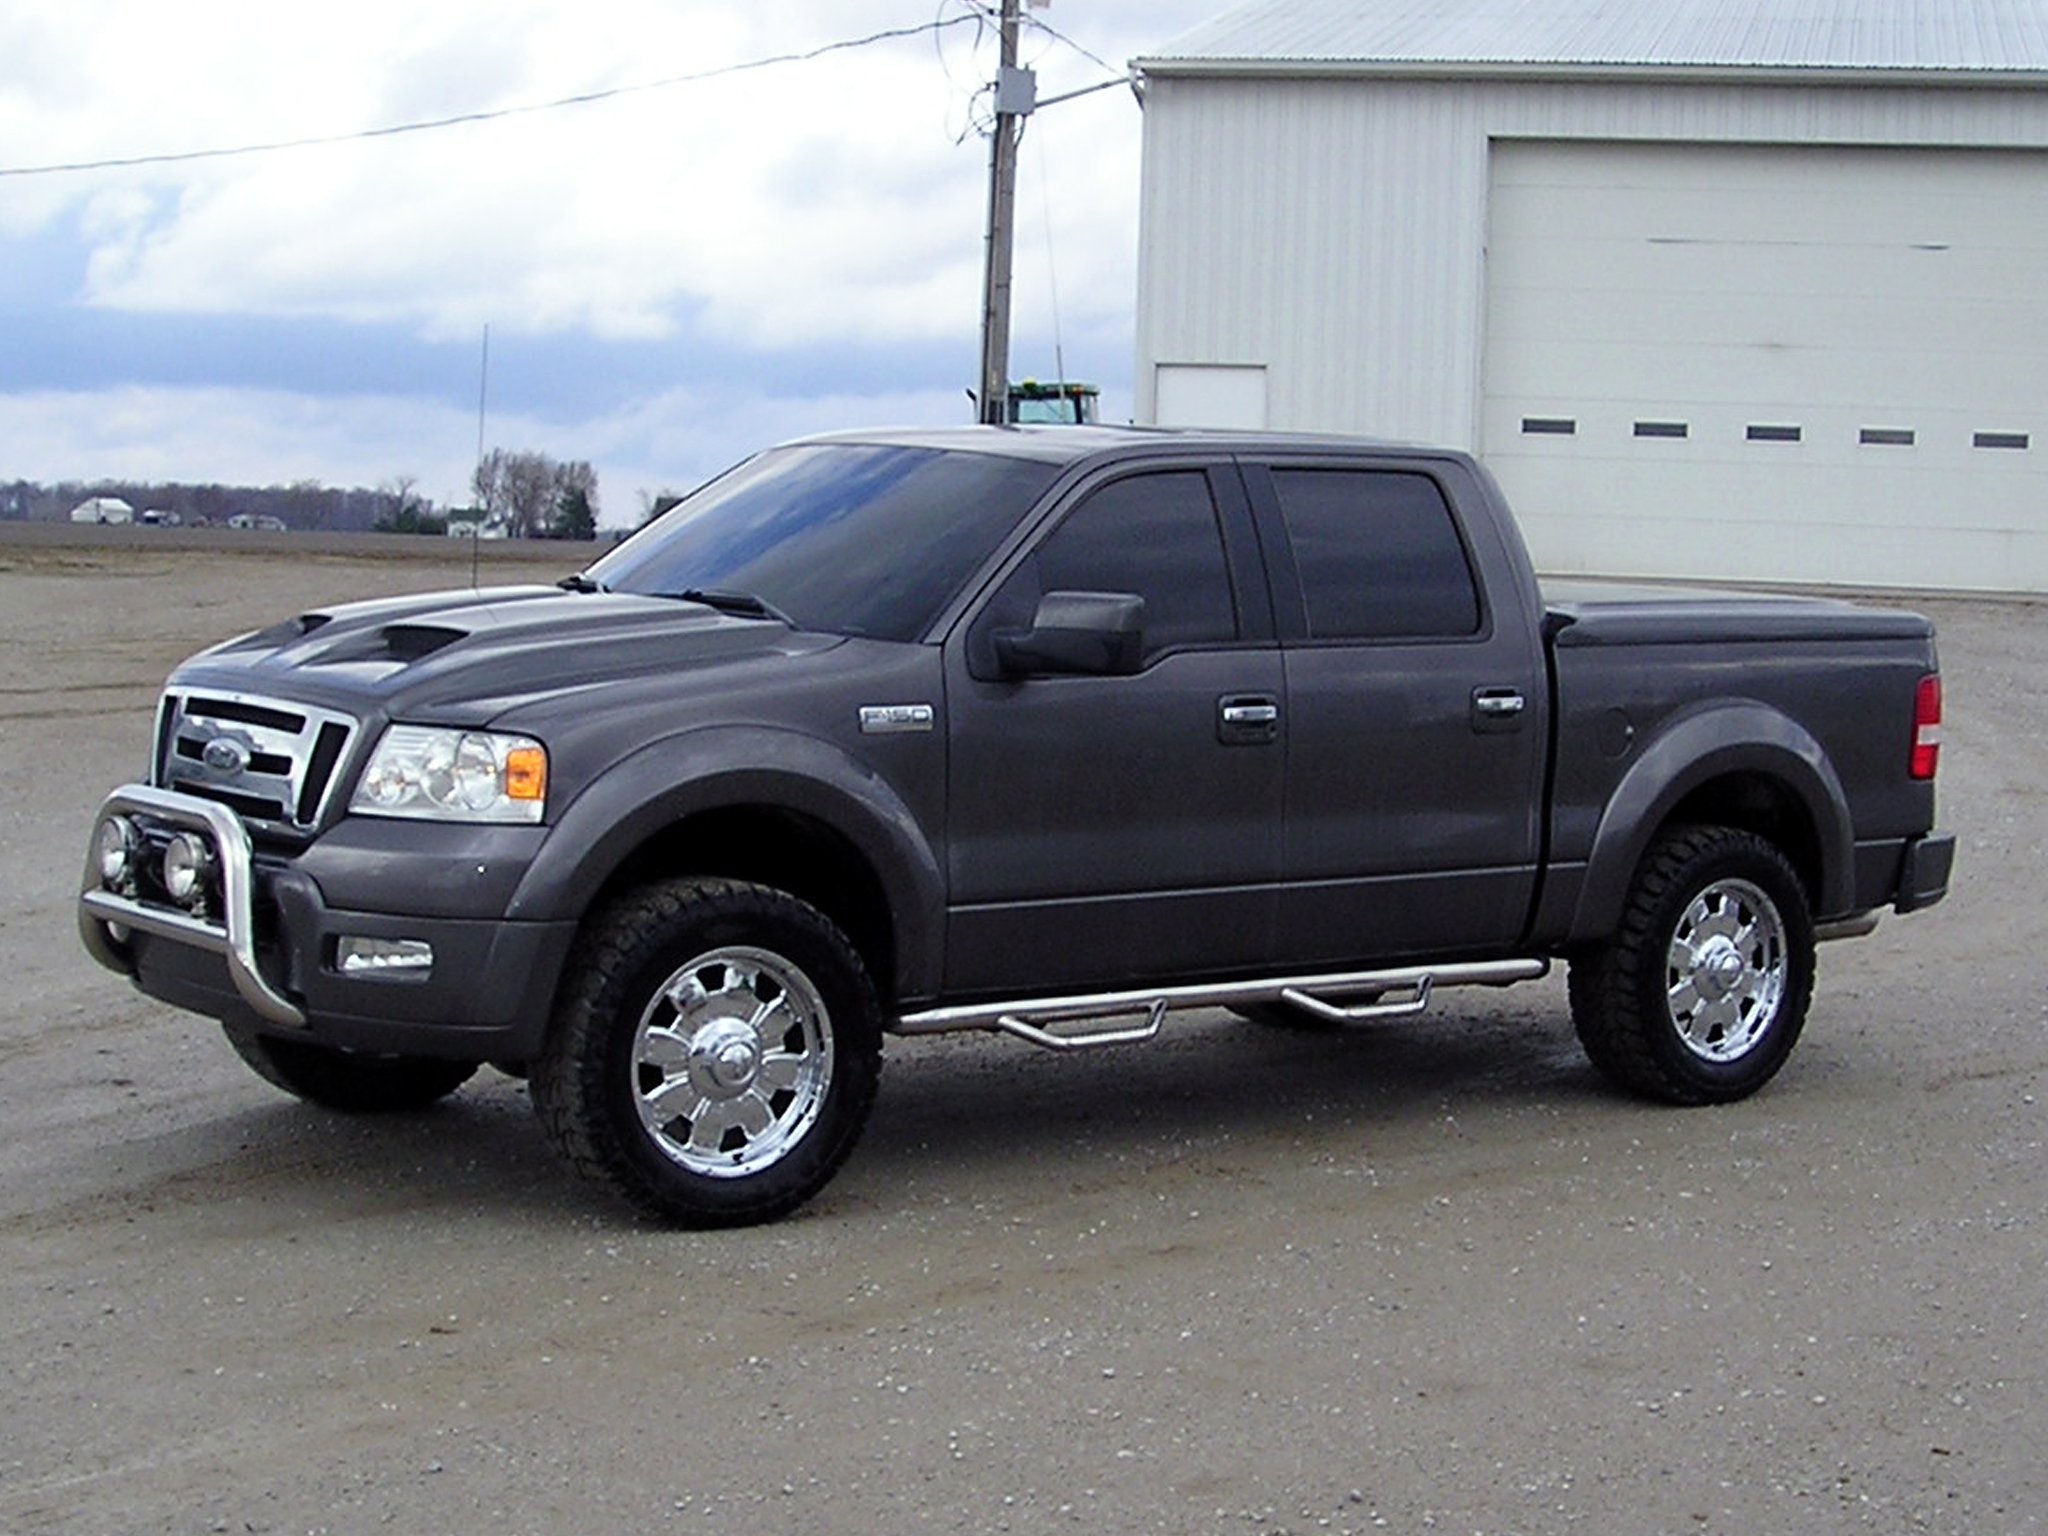 raptor used sale ford ftx pistonheads classifieds cars f for supercab with